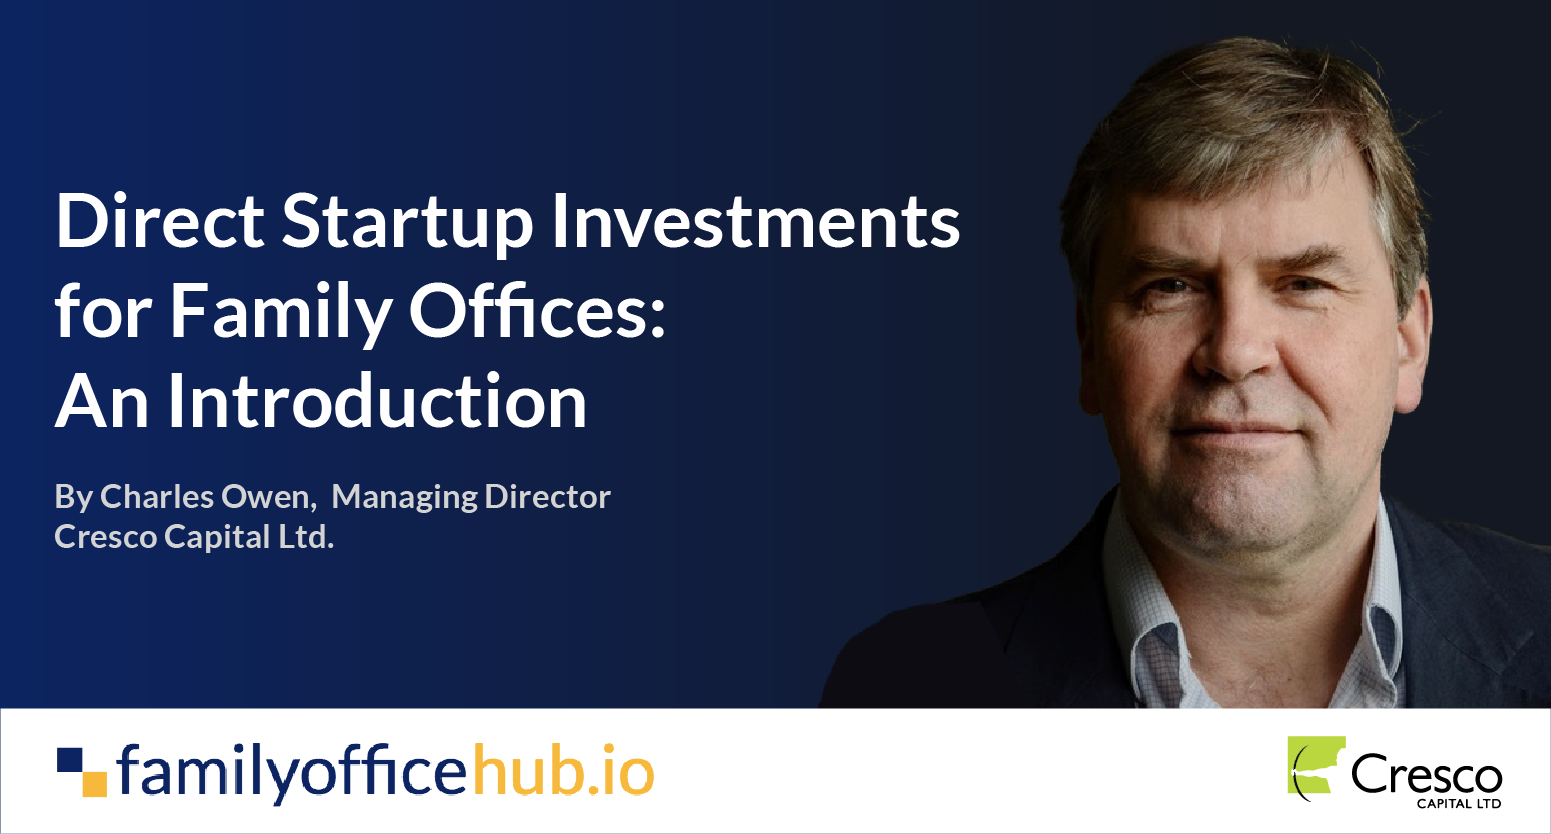 Direct Startup Investments for Family Offices: An Introduction